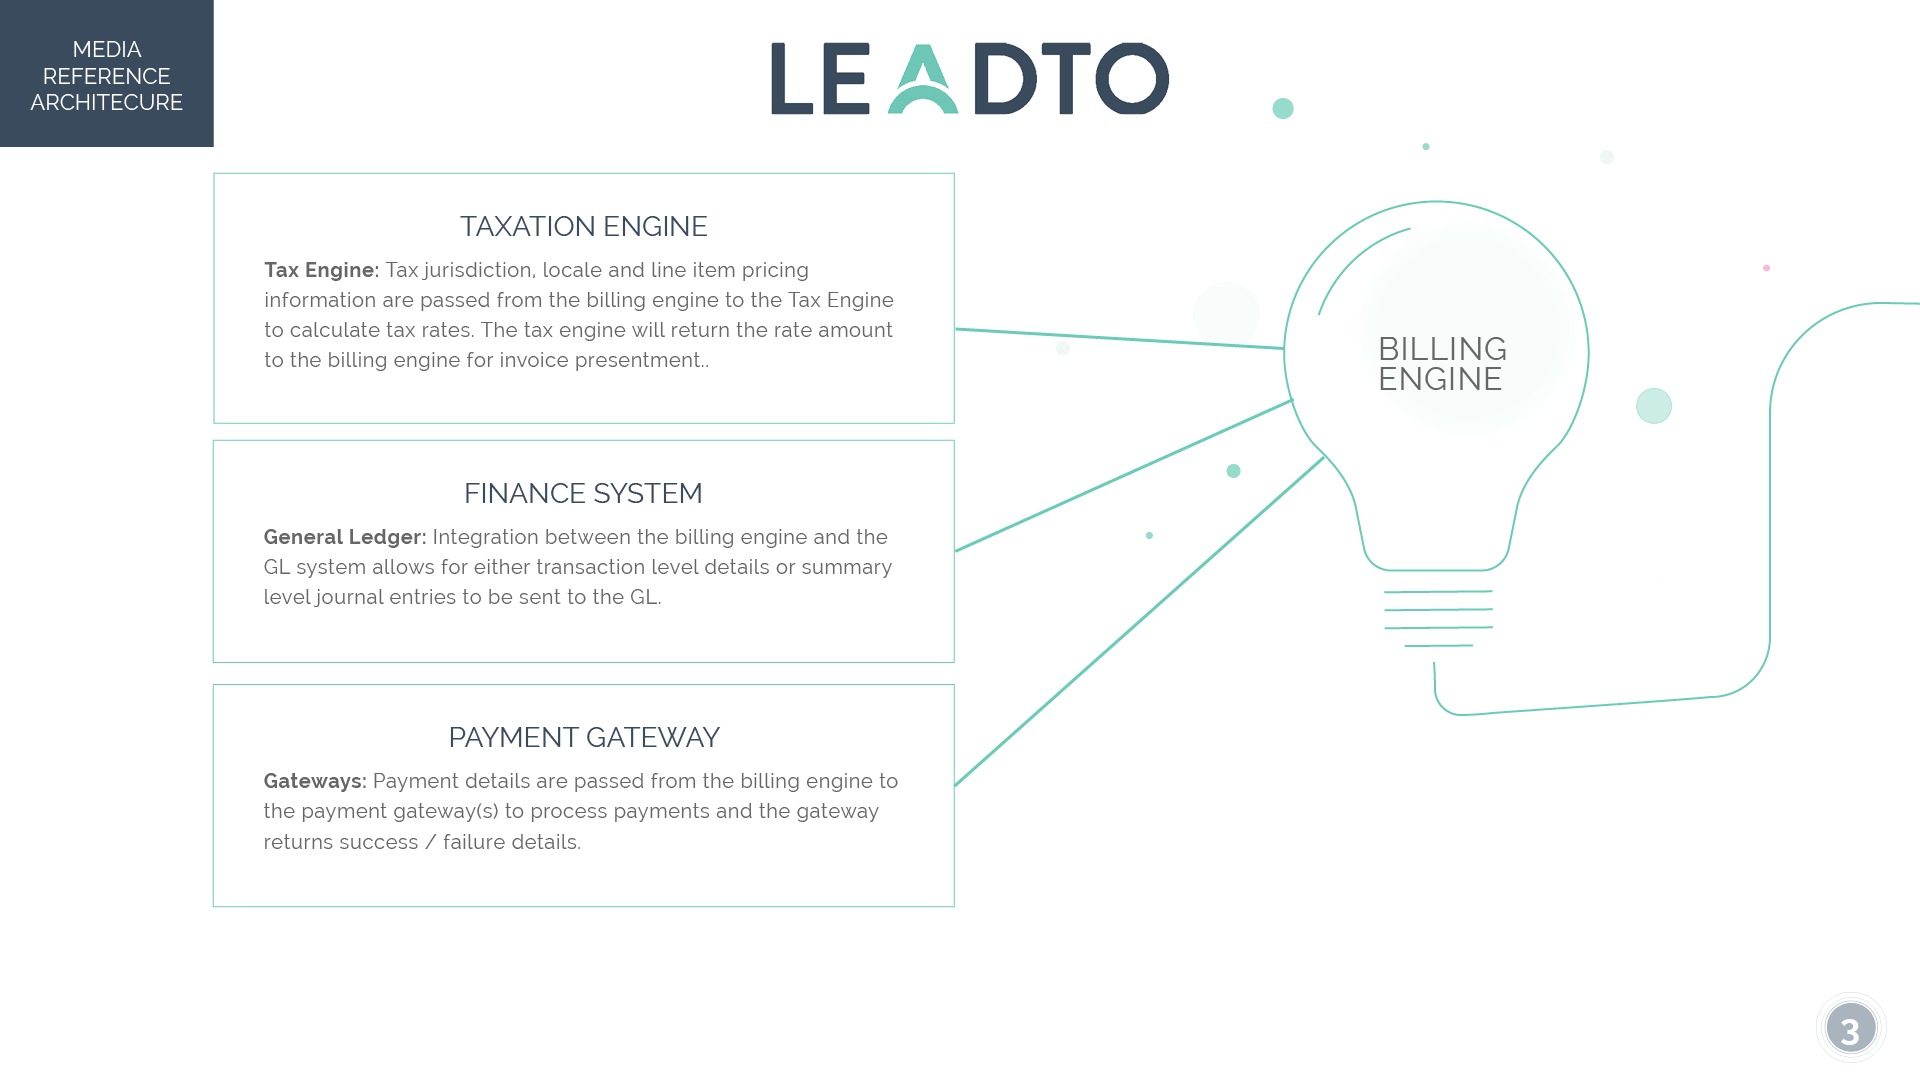 LeadTo Media Reference Architecture3.png